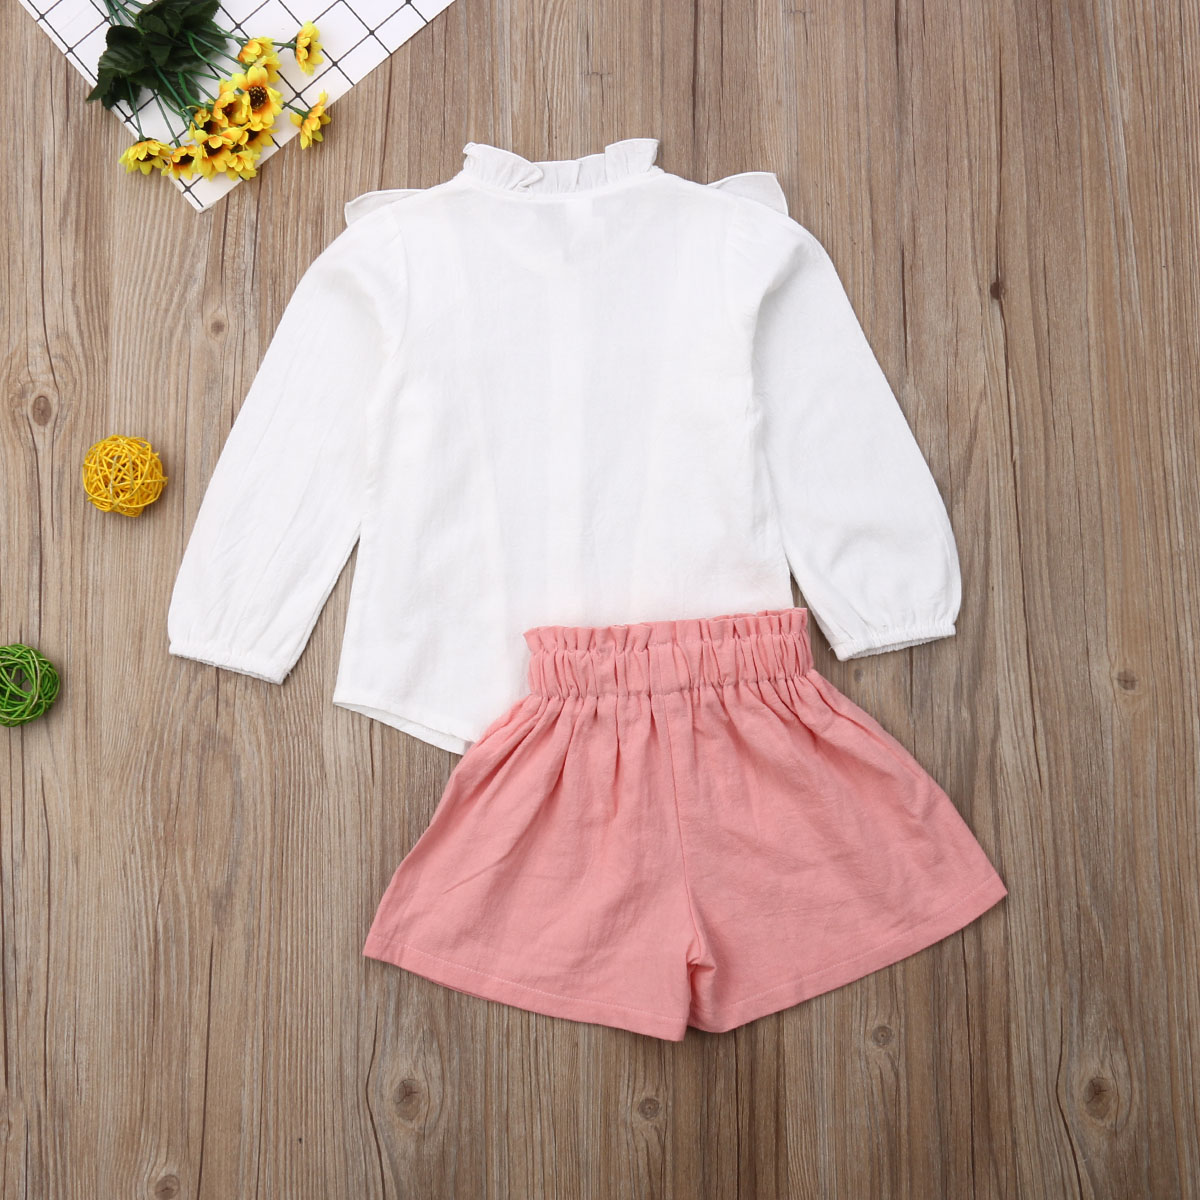 Kids Girl White Long Sleeve Ruffled Blouse Pink Shorts Clothes Set 2 Piece Summer Chidren 39 s Outfits New in Clothing Sets from Mother amp Kids